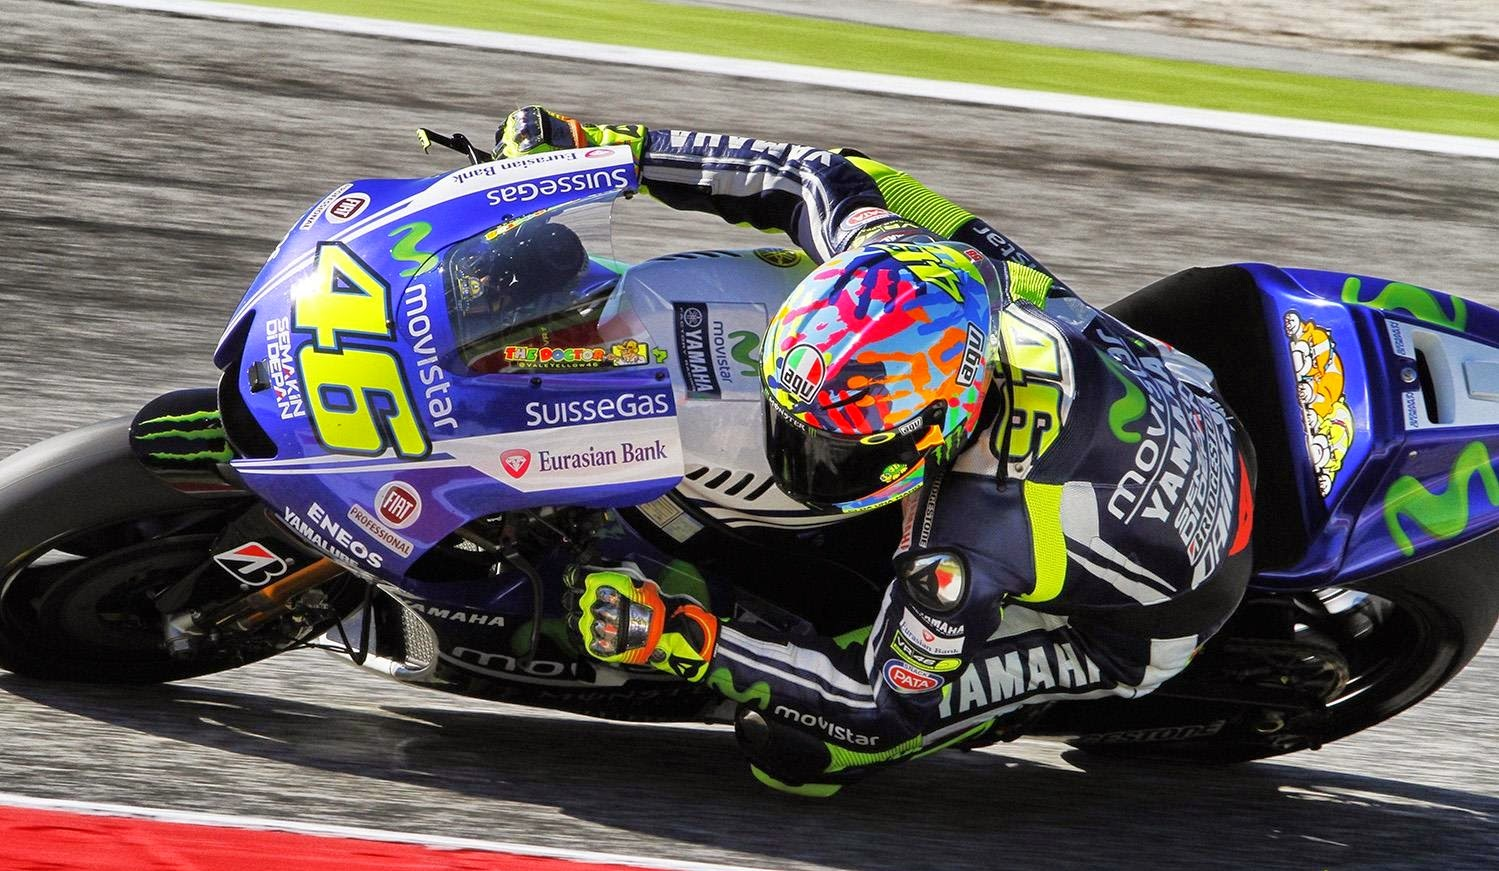 Valentino Rossi 'Give Us A Hand' helmet (Misano 2014